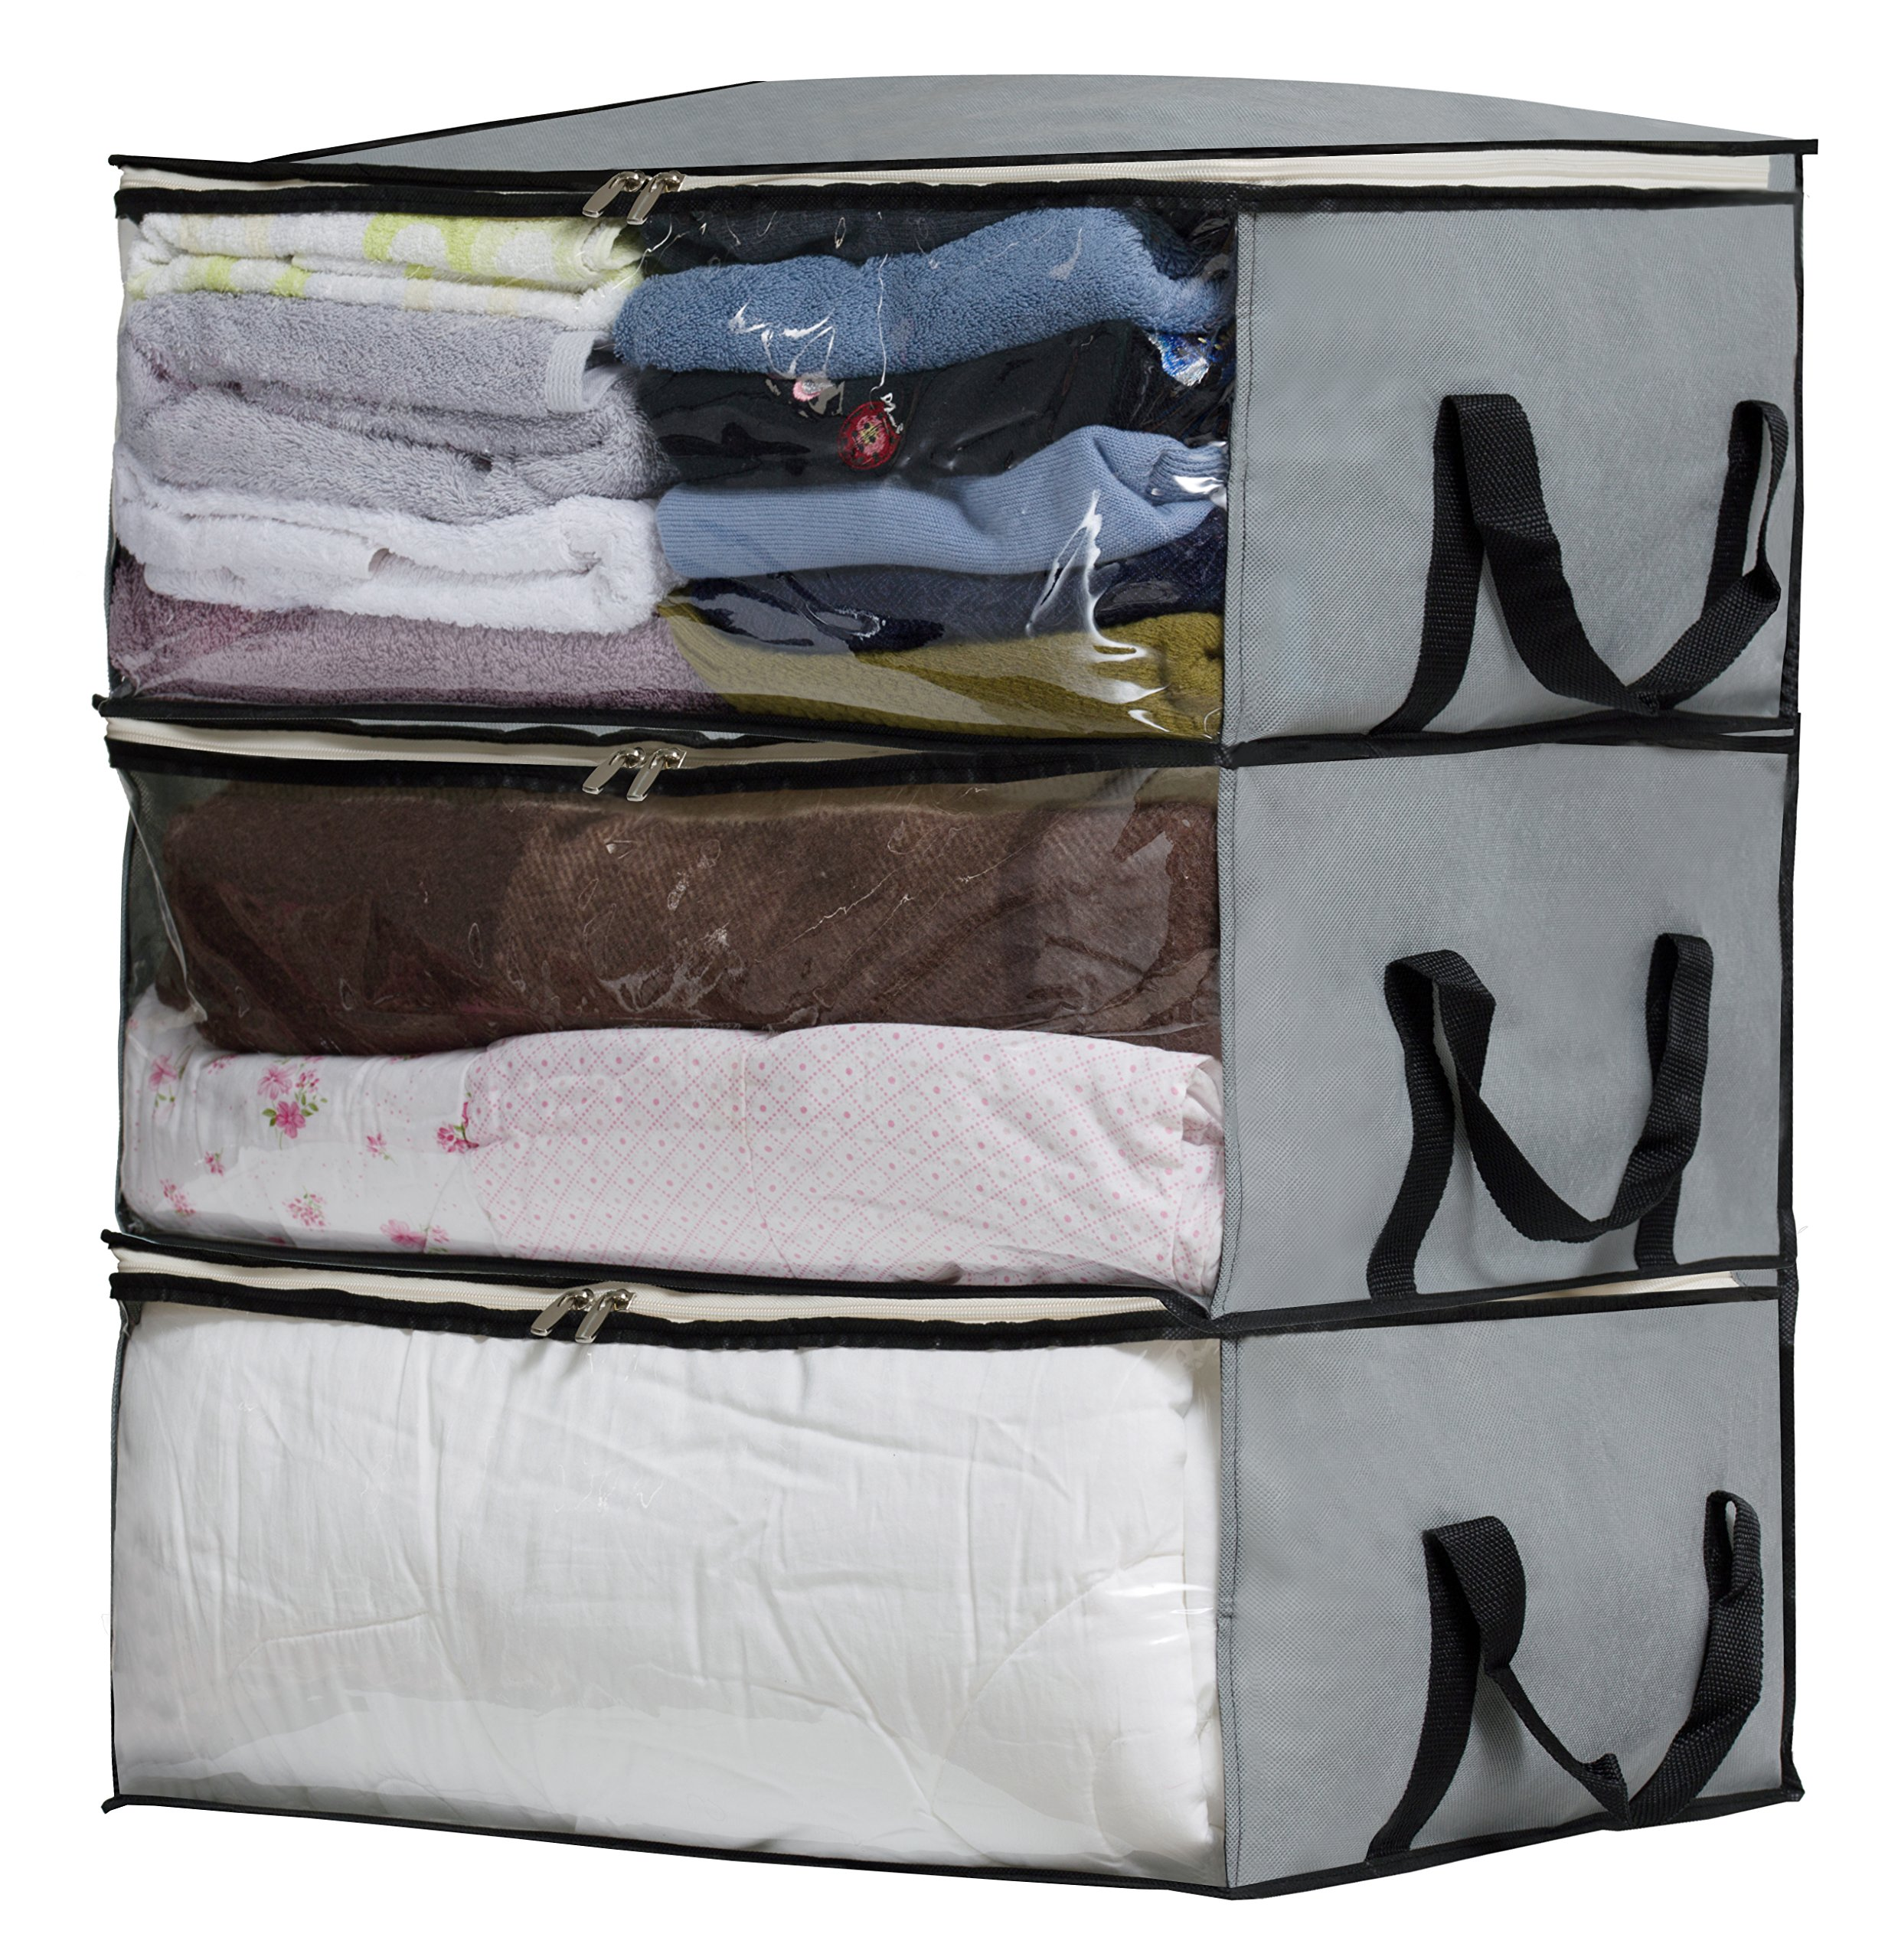 SLEEPING LAMB Foldable Comforter Storage Bag Organizers Underbed Storage Containers for Blankets, Clothes, Bedding, Closets, Under Bed, 3 Piece Set